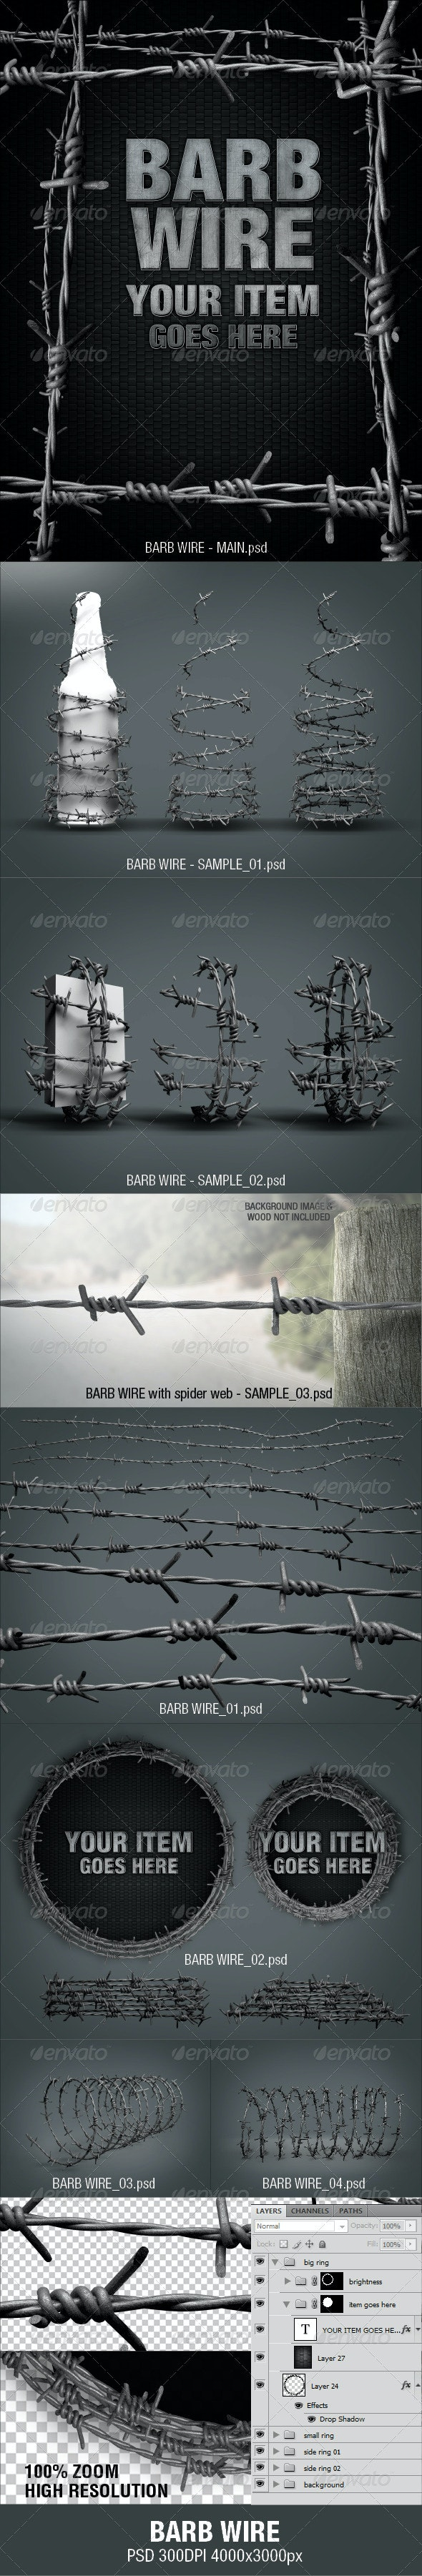 Barb Wire - Miscellaneous 3D Renders